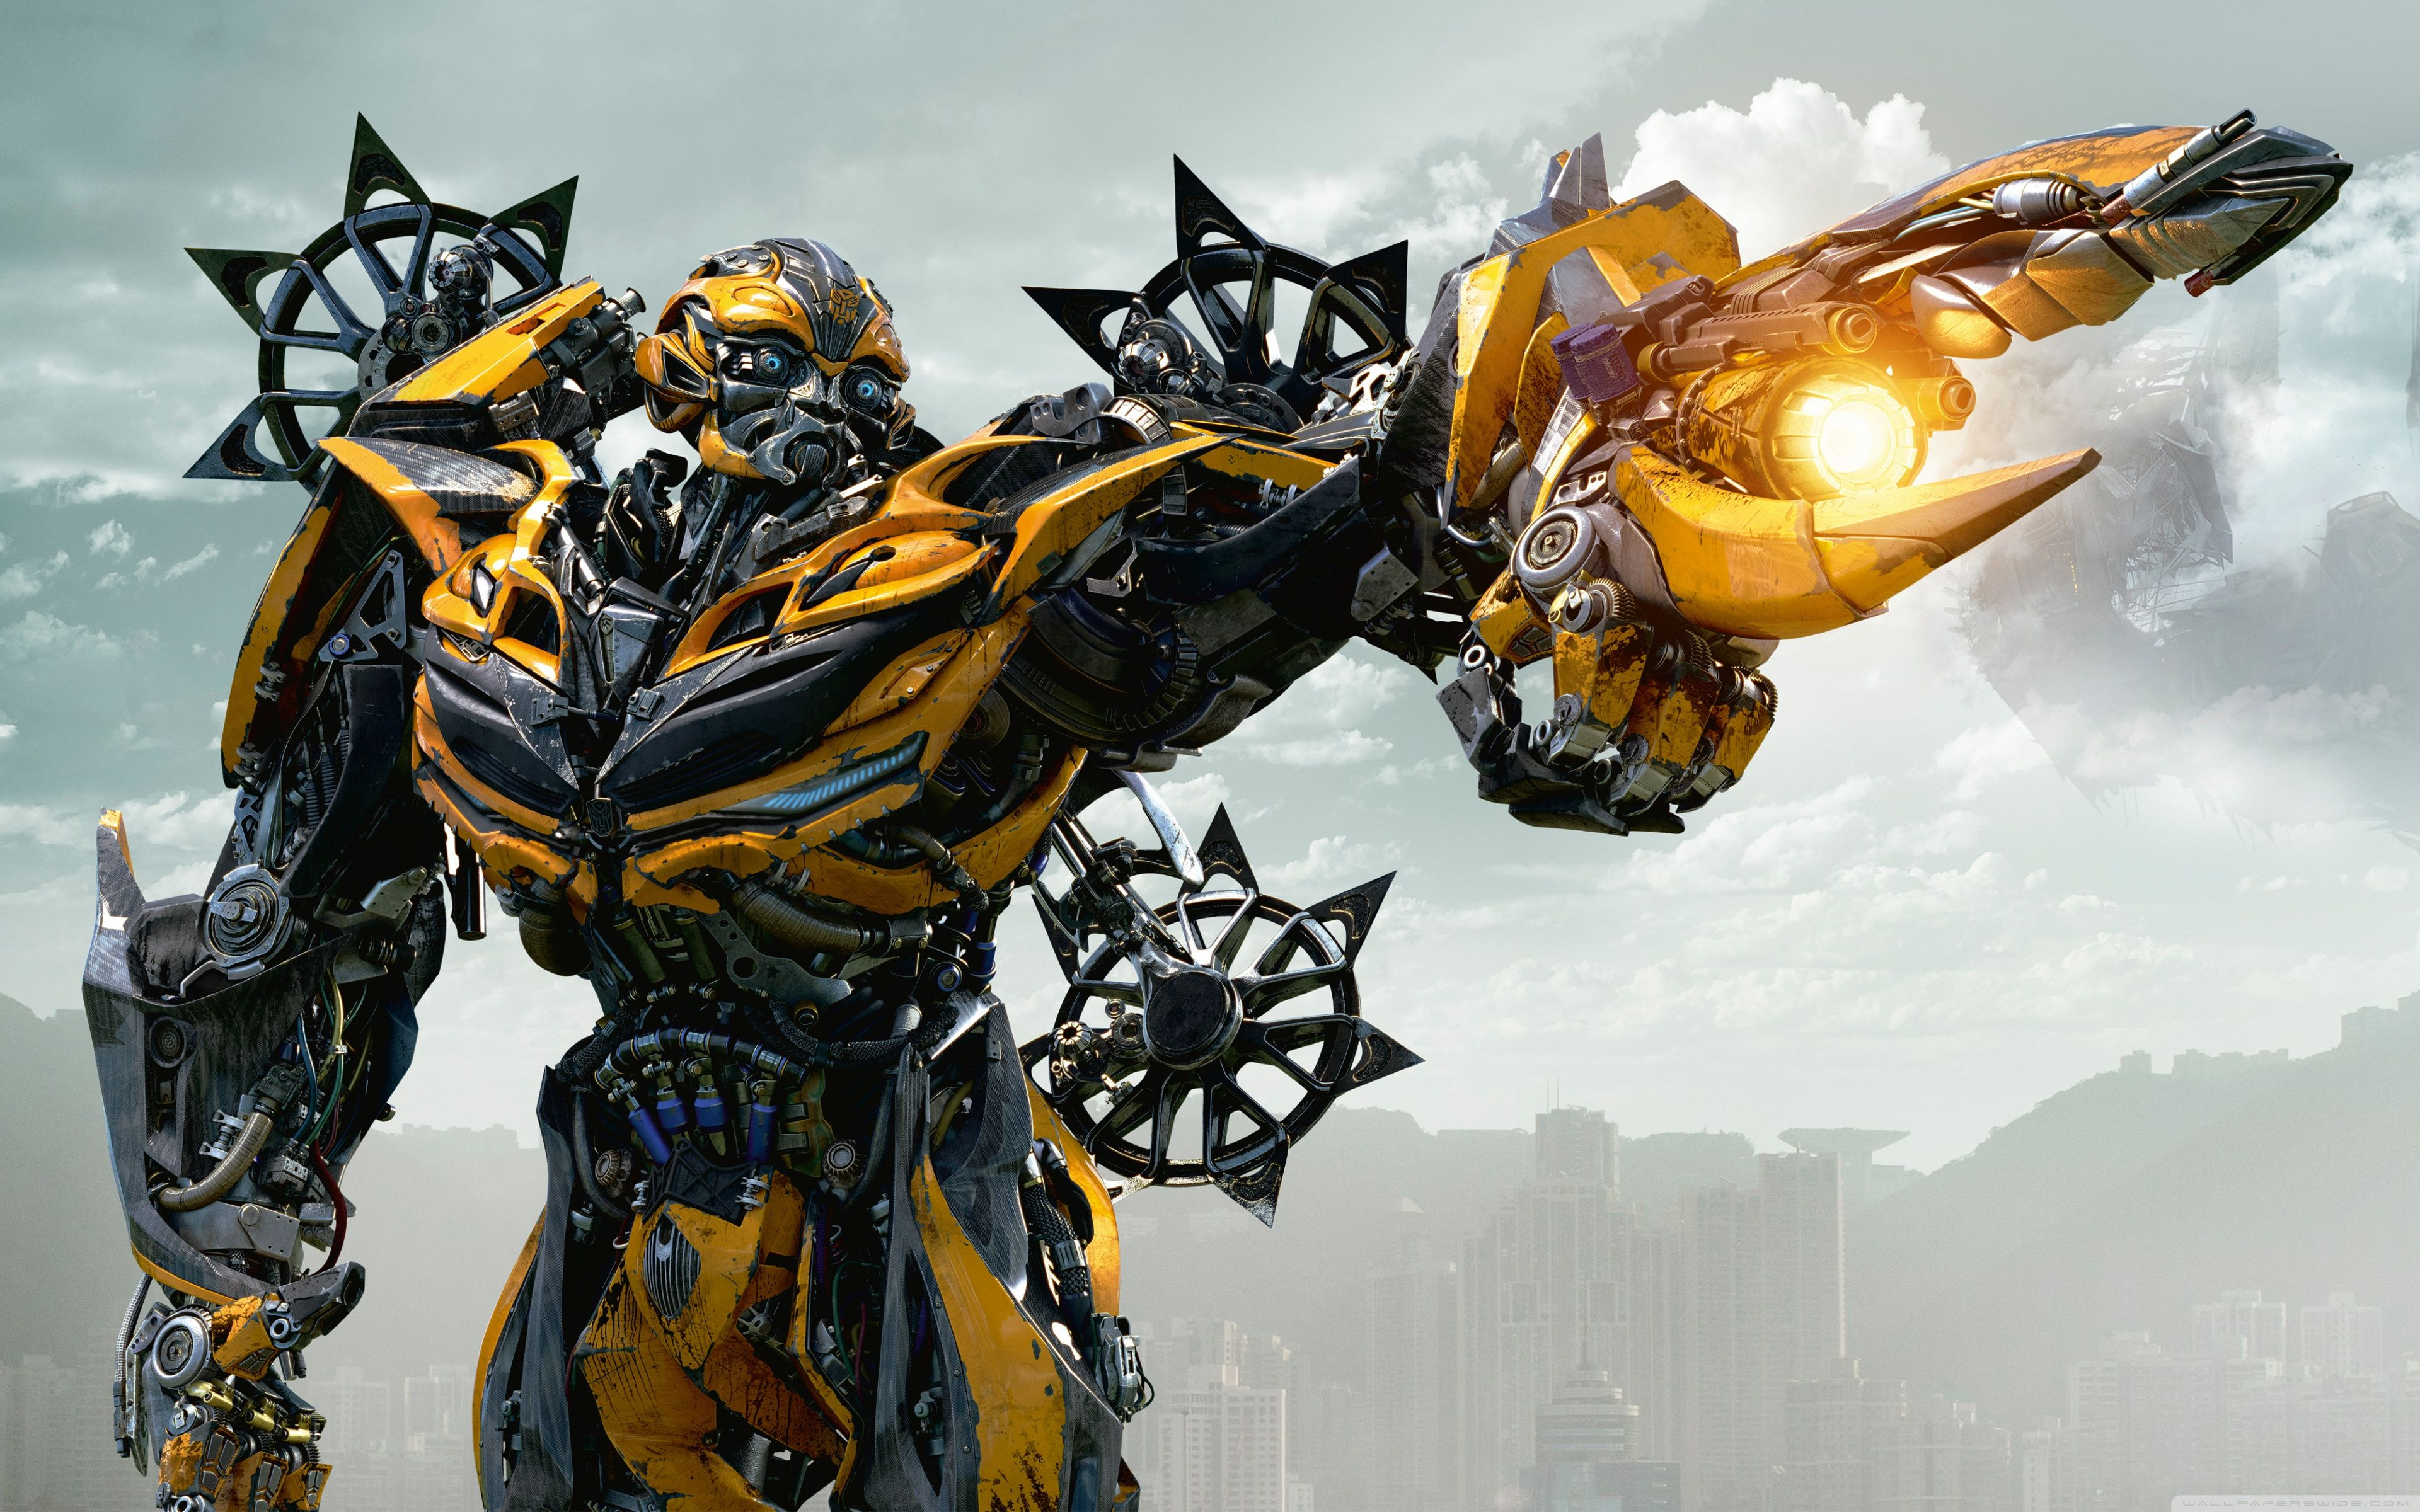 Transformers Wallpapers   Top Transformers Backgrounds 3840x2400